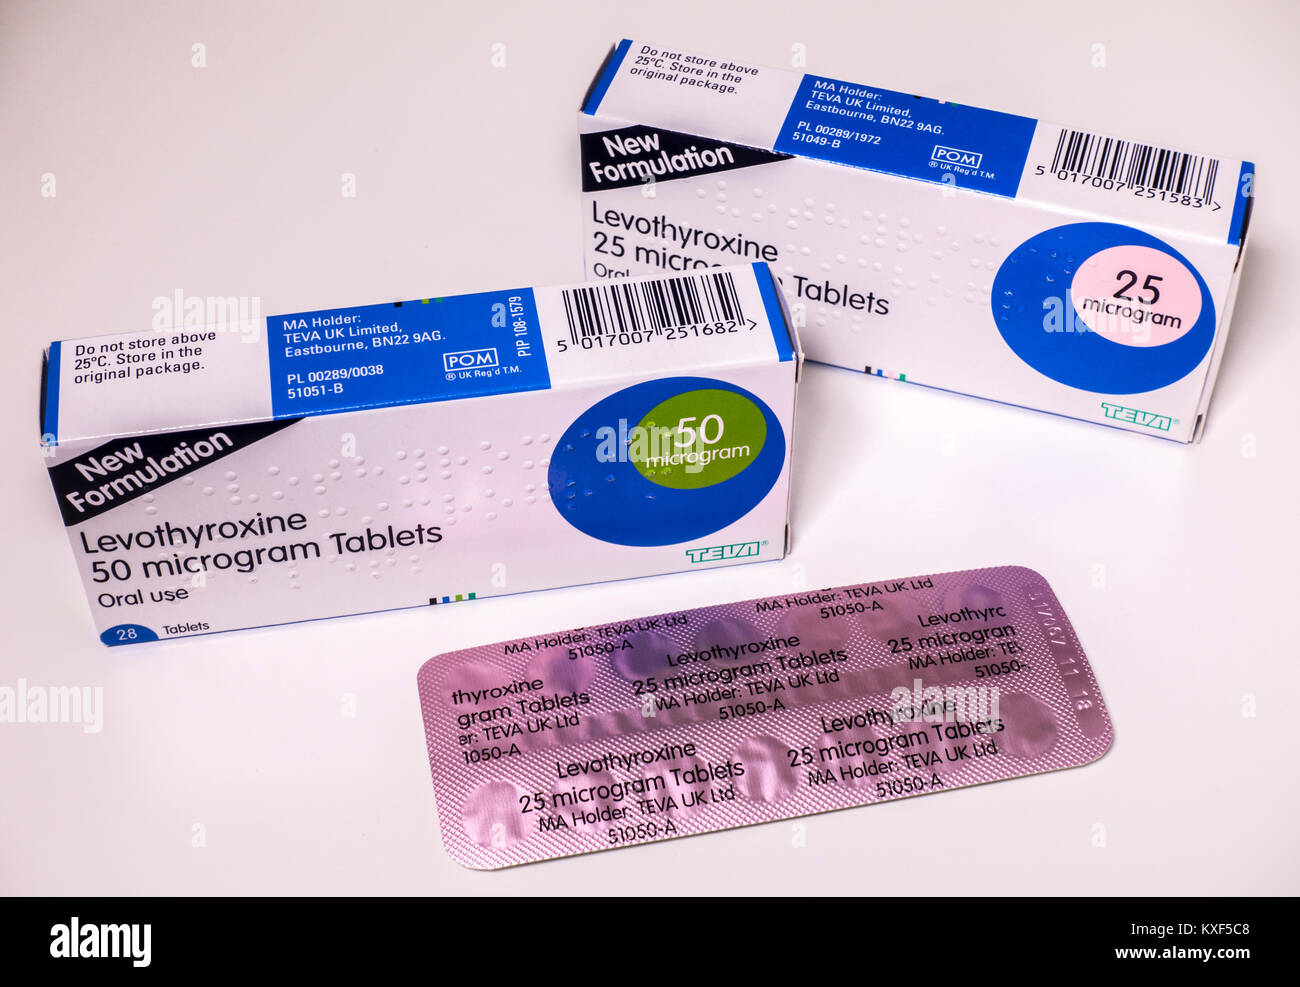 Levothyroxine medication (hormone replacement tablets) to treat an underactive thyroid gland - also called low thyroid - Stock Image